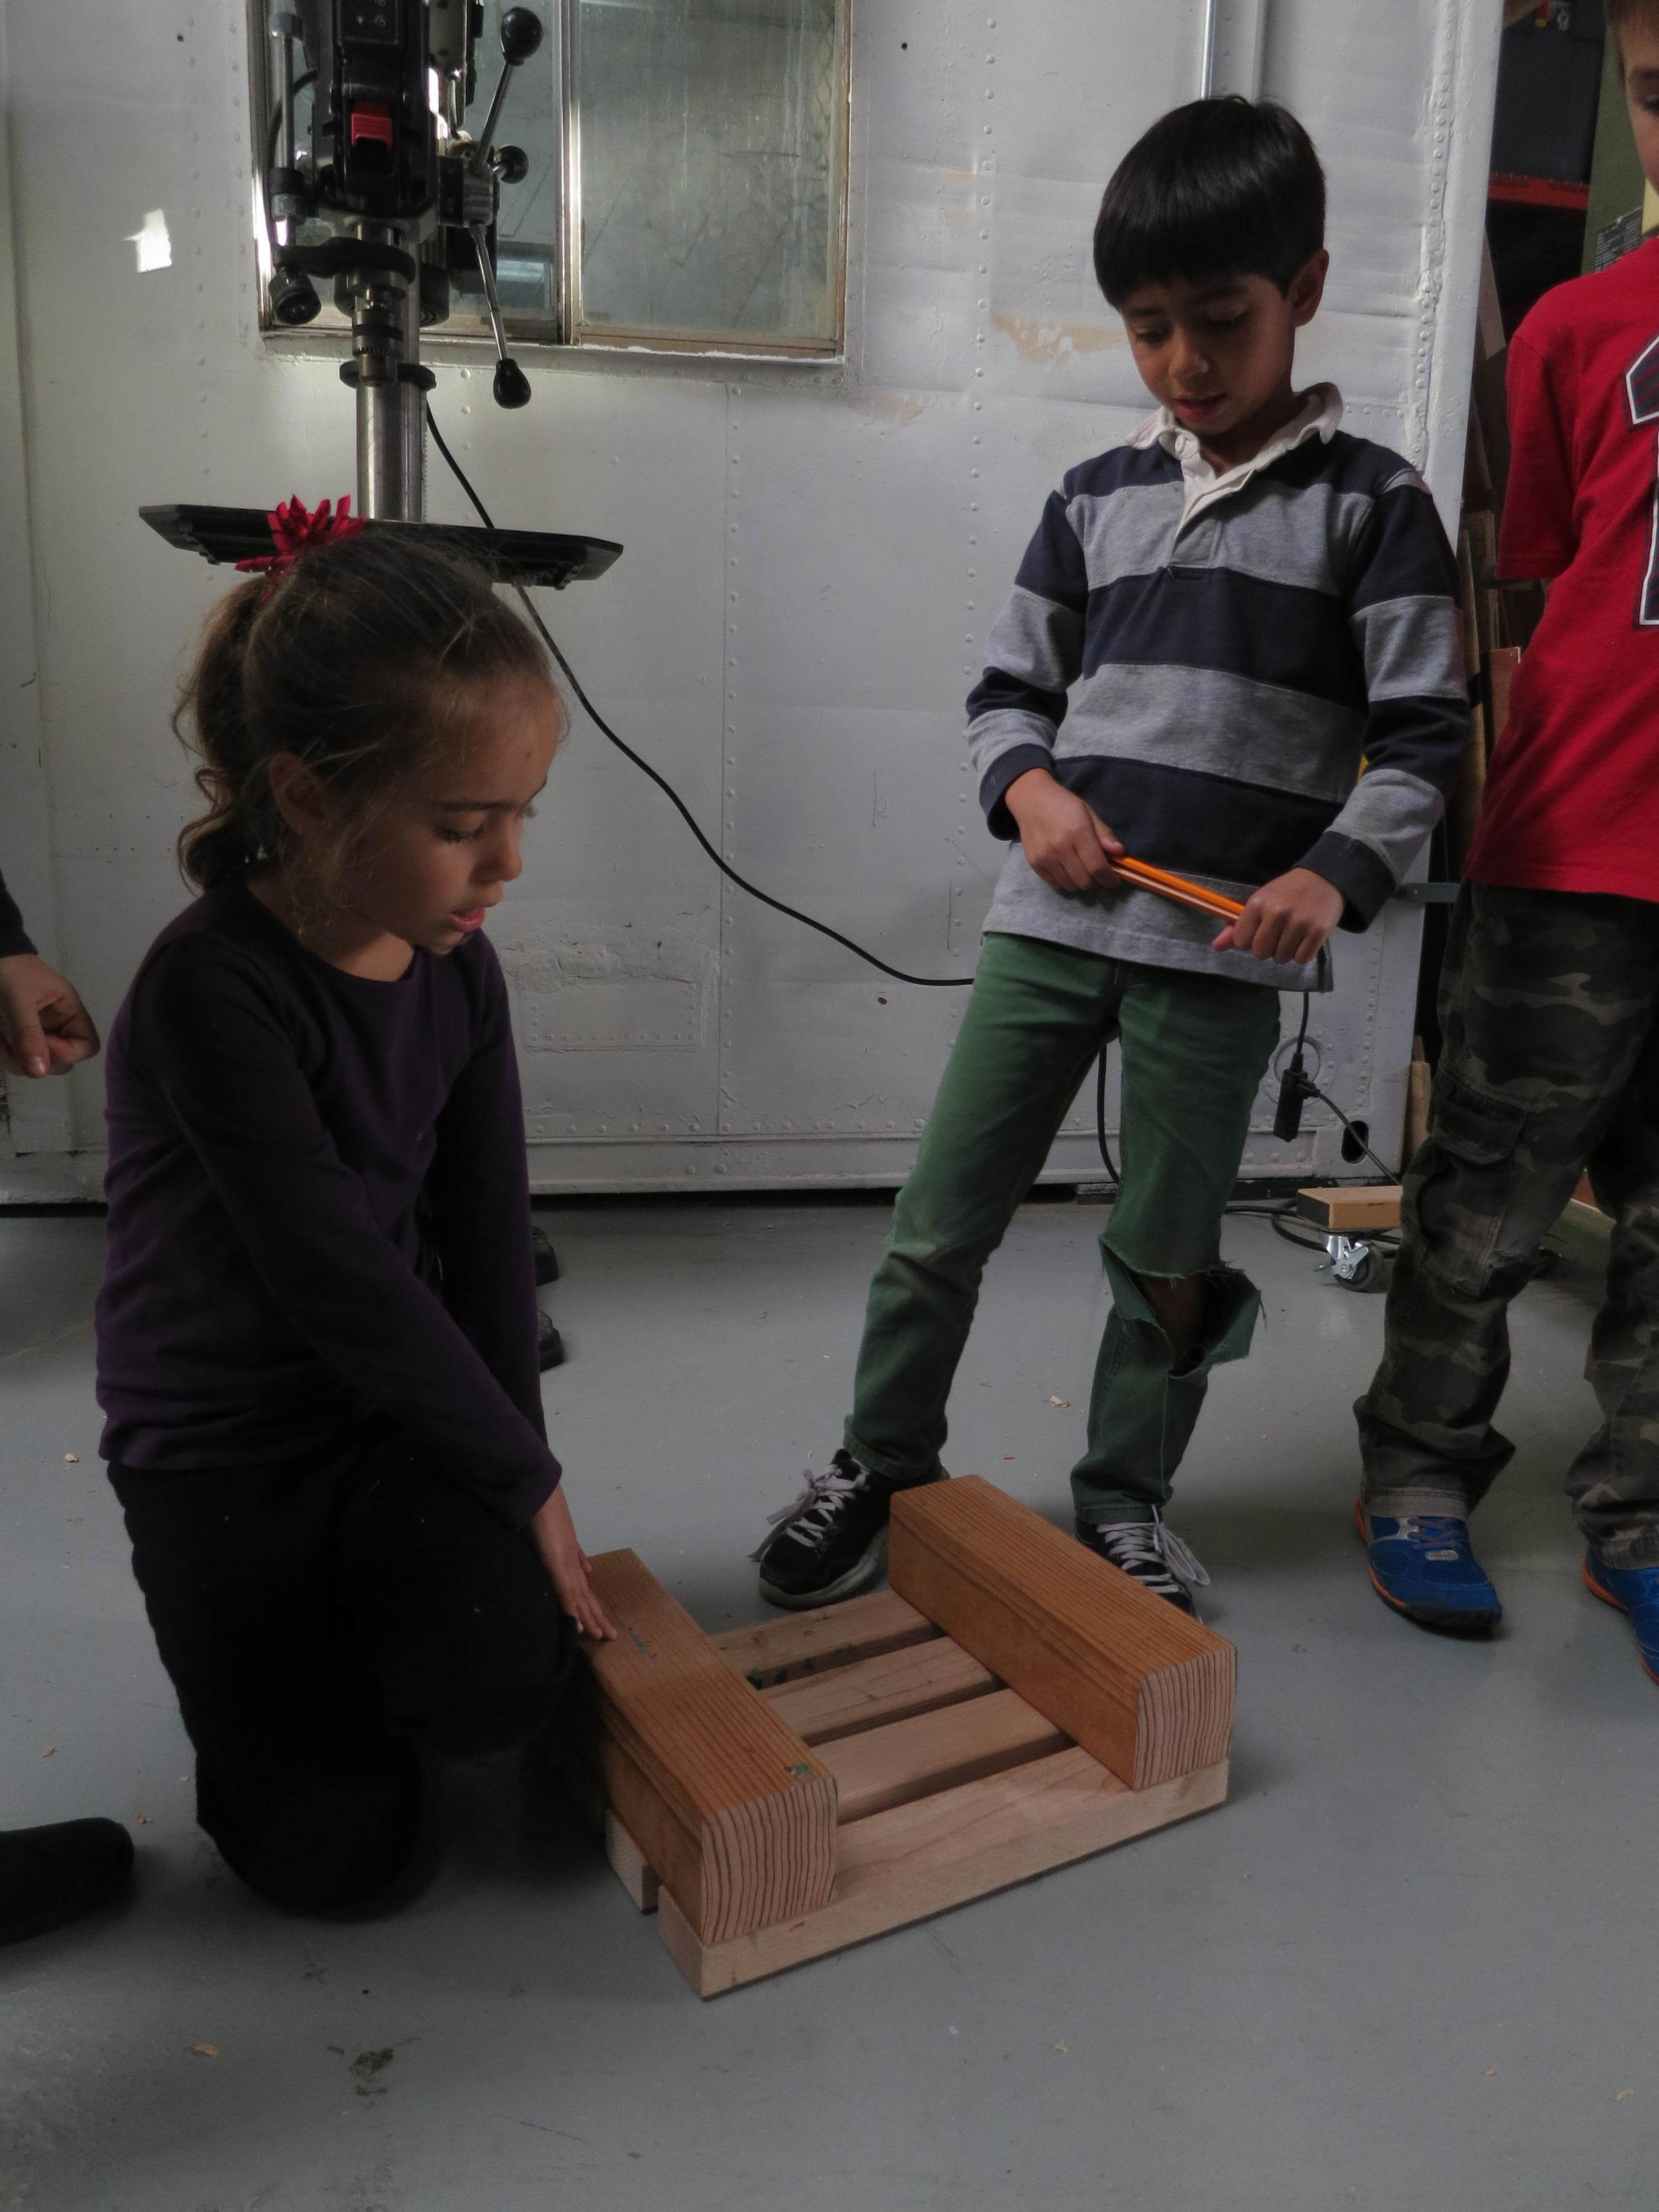 Natalia and Anand get some inspiration from flipping over a built stool used in the shop.